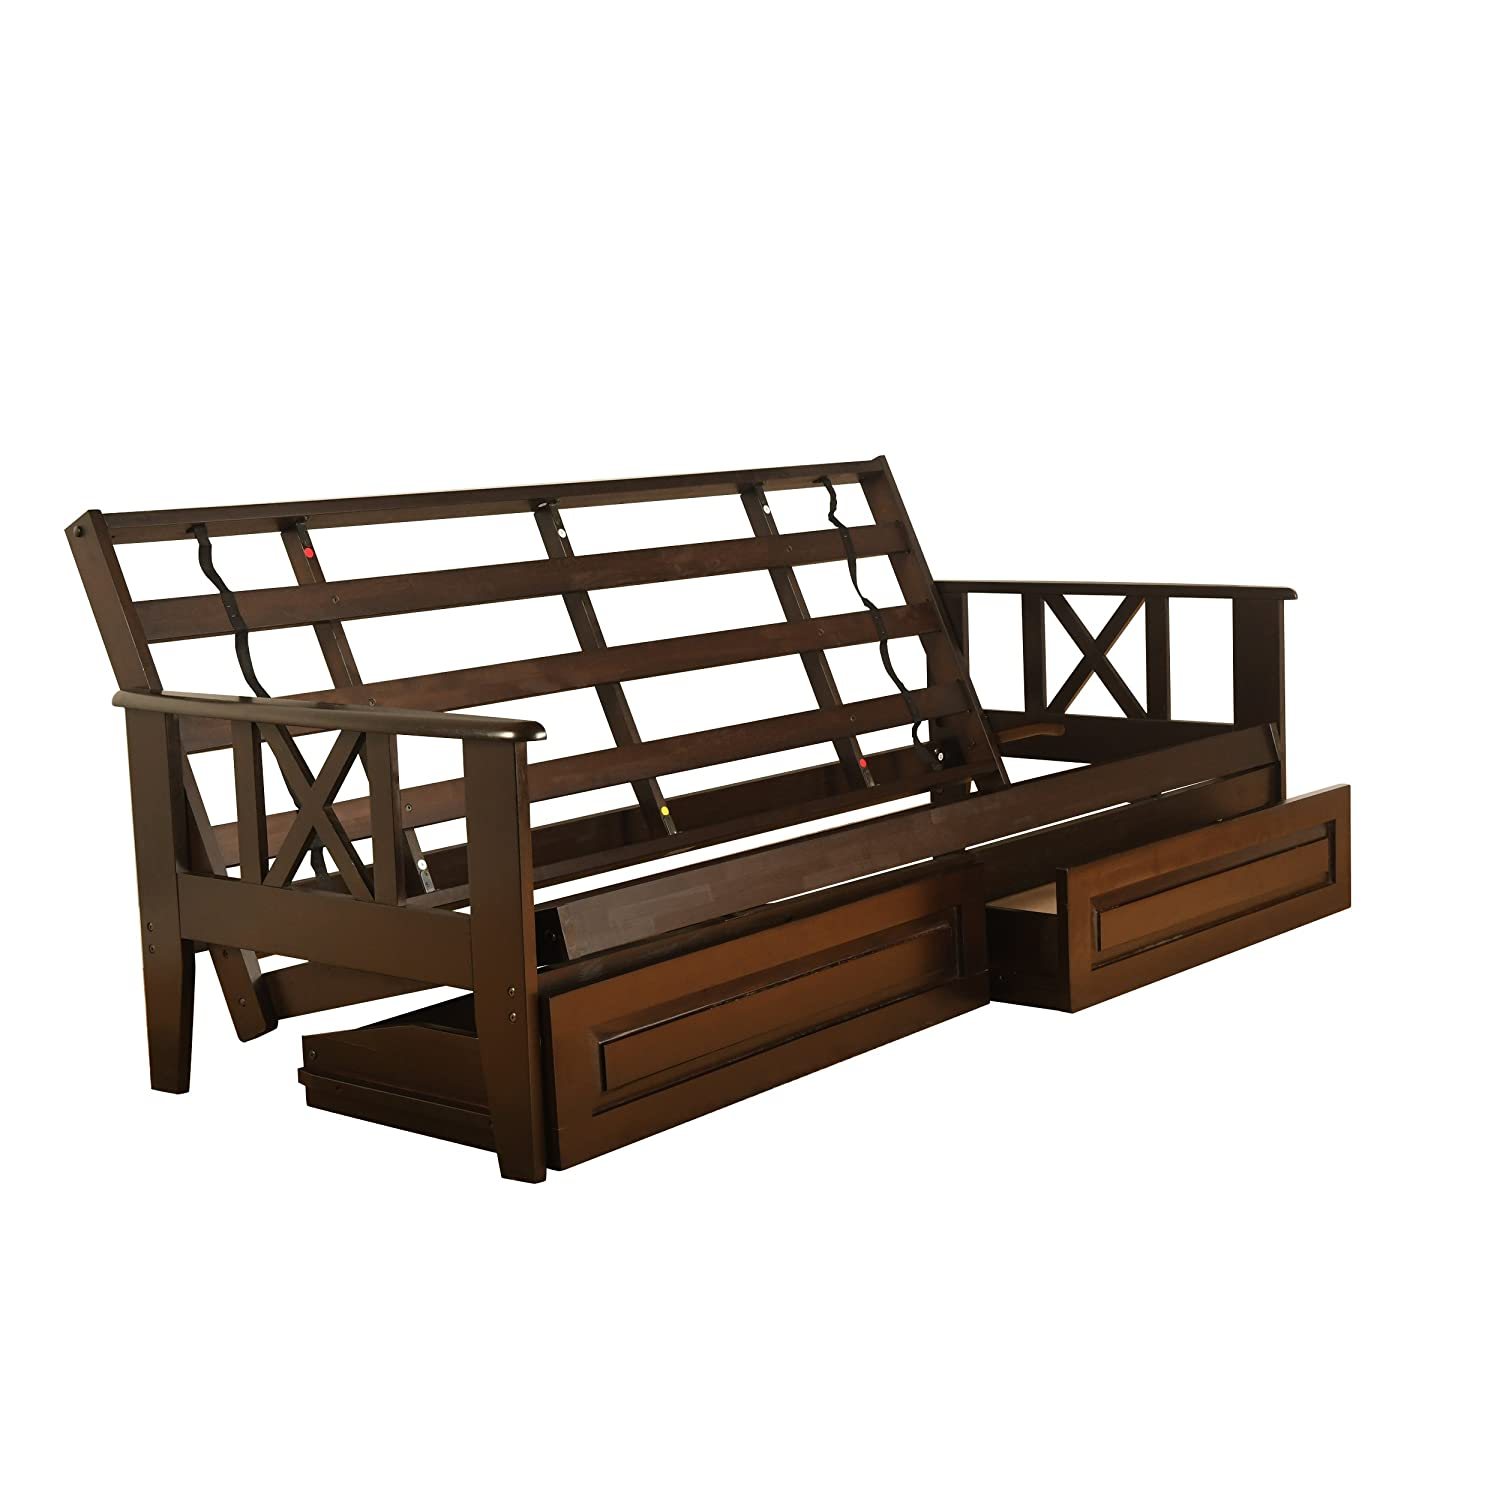 RawFuton Excelsior Espresso Futon Frame  x  - Choose Full or Queen or Full w/Drawers (Full) Excelsior Main mnt_brbds